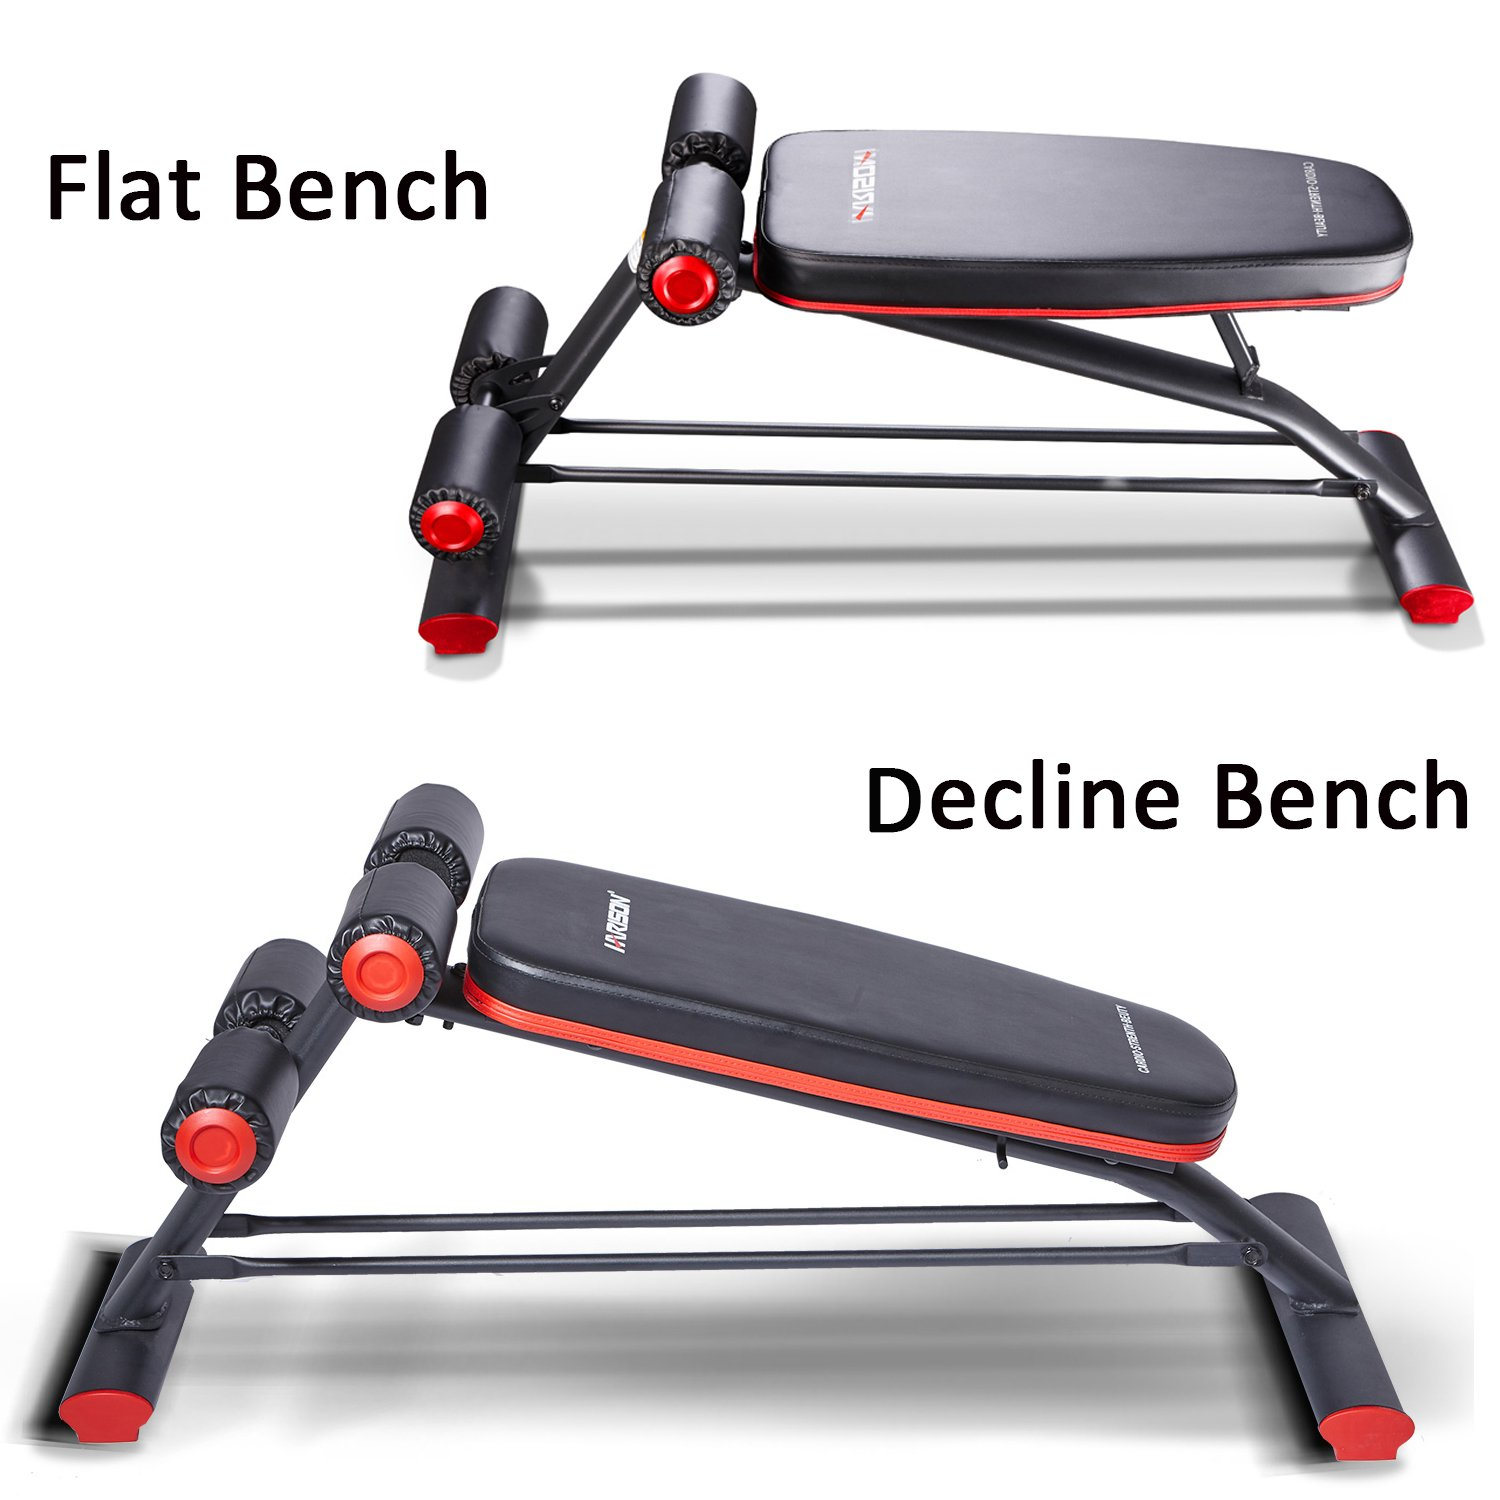 HARISON Compact Weight Bench with Dumbbel Rack, Adjustbale Flat Decline Workout Bench Exercise Equipment for Home Use